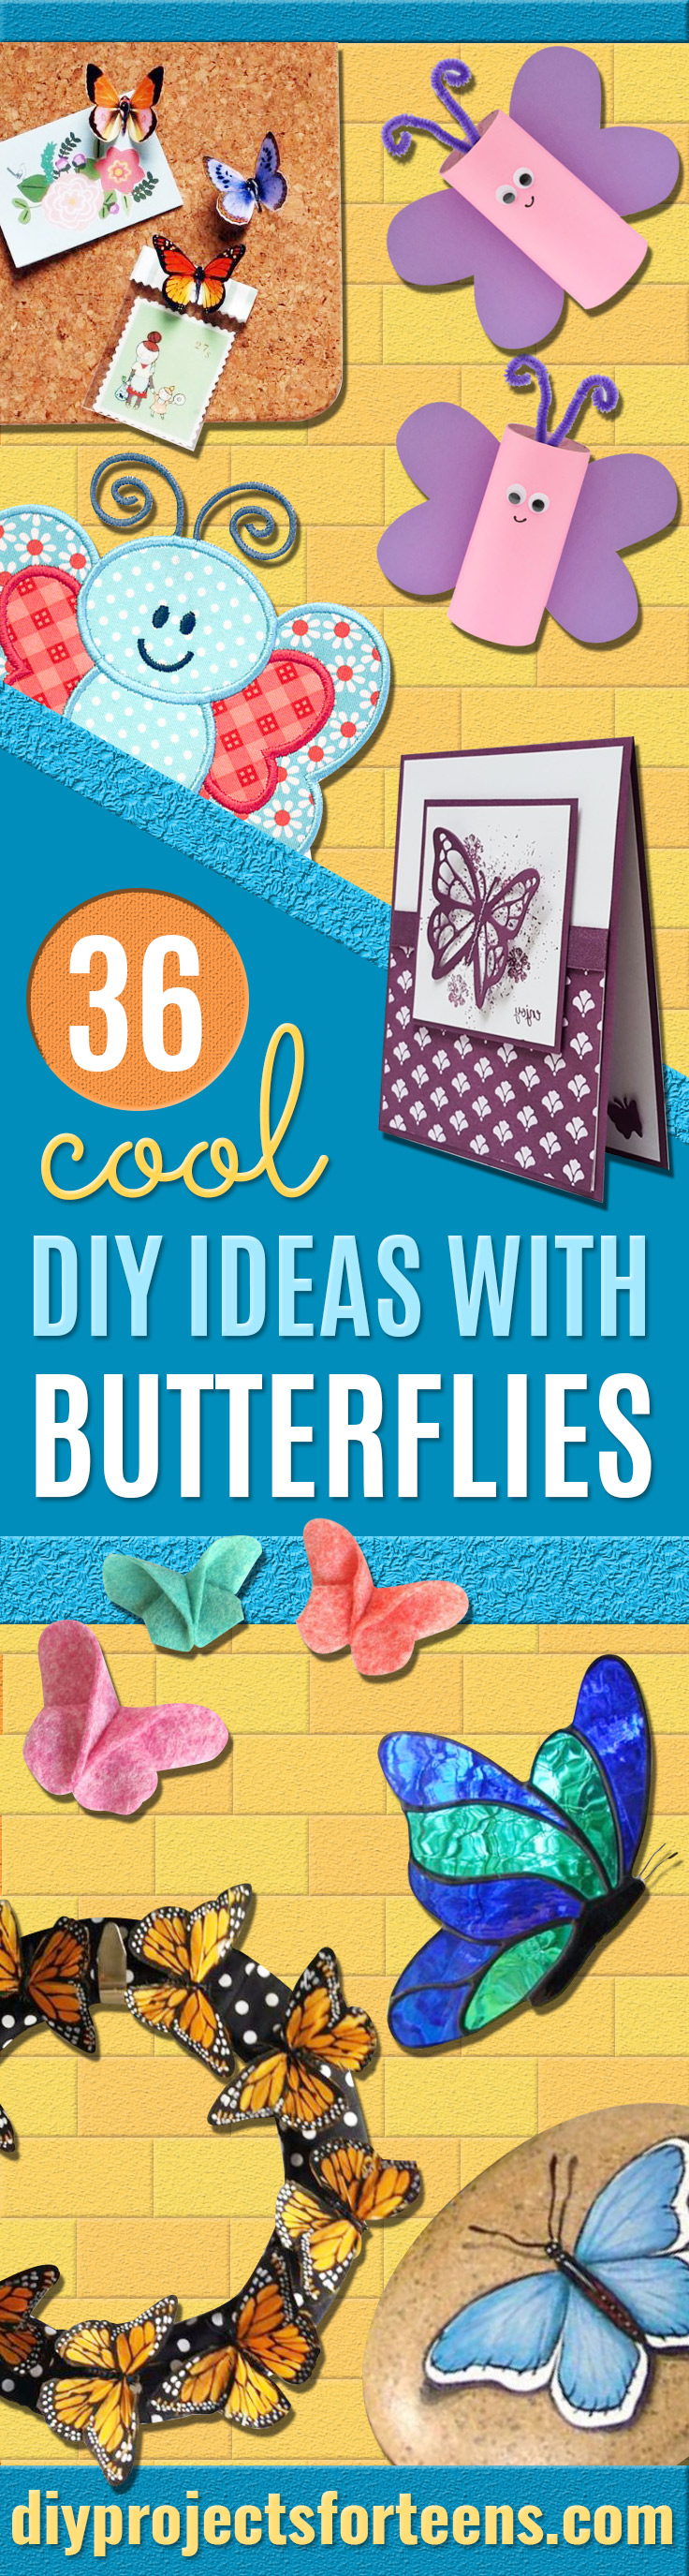 DIY Ideas With Butterflies - Cute and Easy DIY Projects for Butterfly Lovers - Wall and Home Decor Projects, Things To Make and Sell on Etsy - Quick Gifts to Make for Friends and Family - Homemade No Sew Projects- Fun Jewelry, Cool Clothes and Accessories http://diyprojectsforteens.com/diy-ideas-butterflies